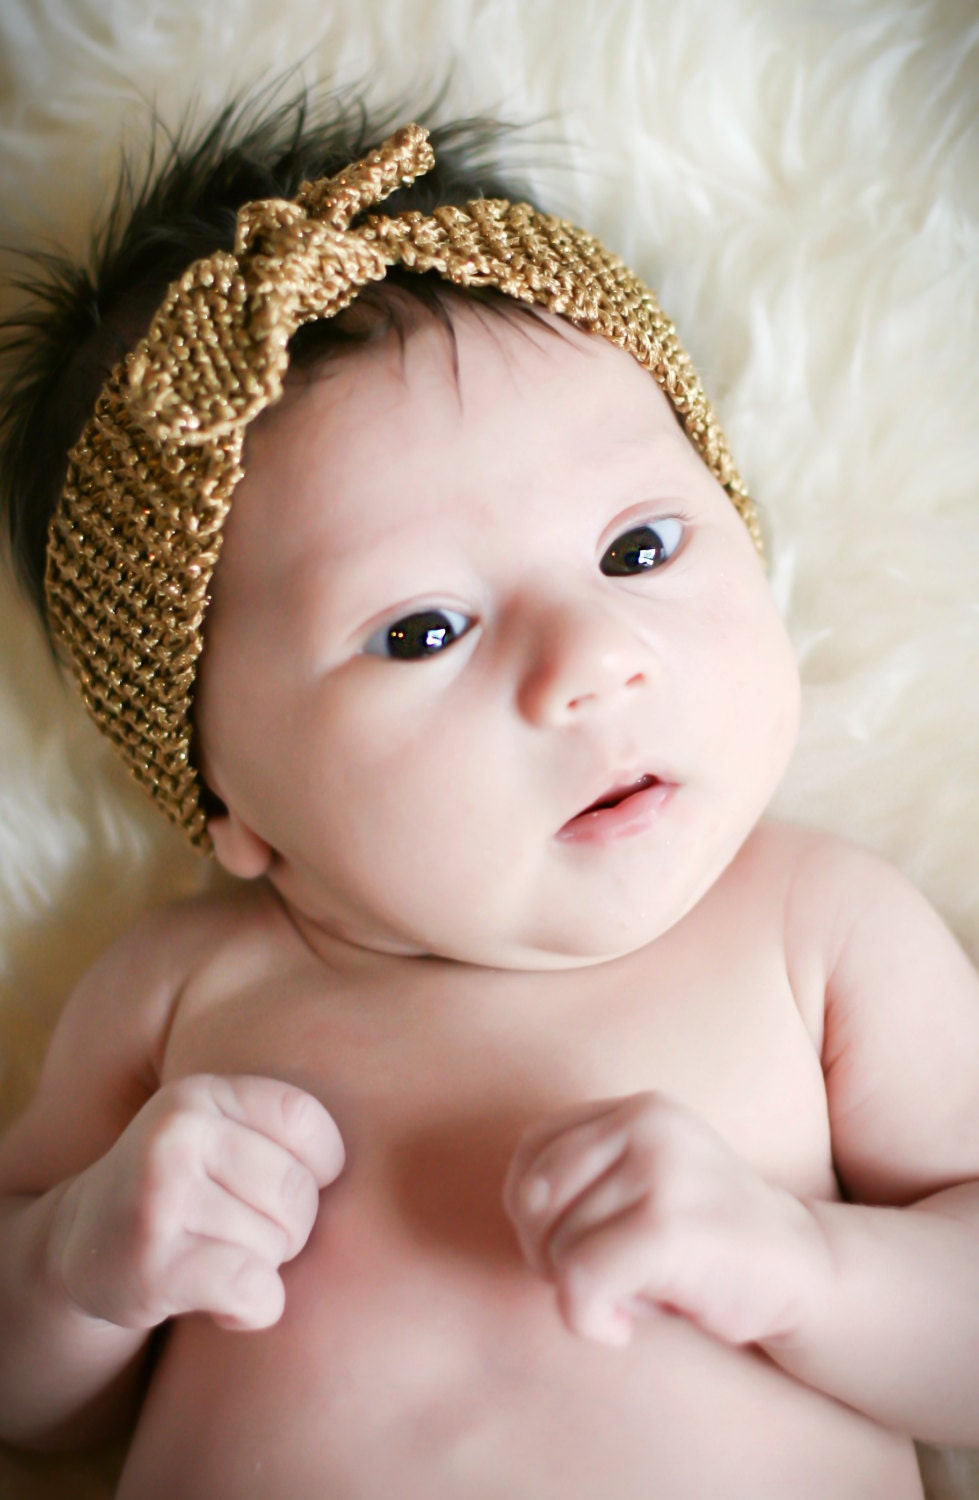 Knitting Headband For Baby : Turban knot knitted headband knitting pattern for